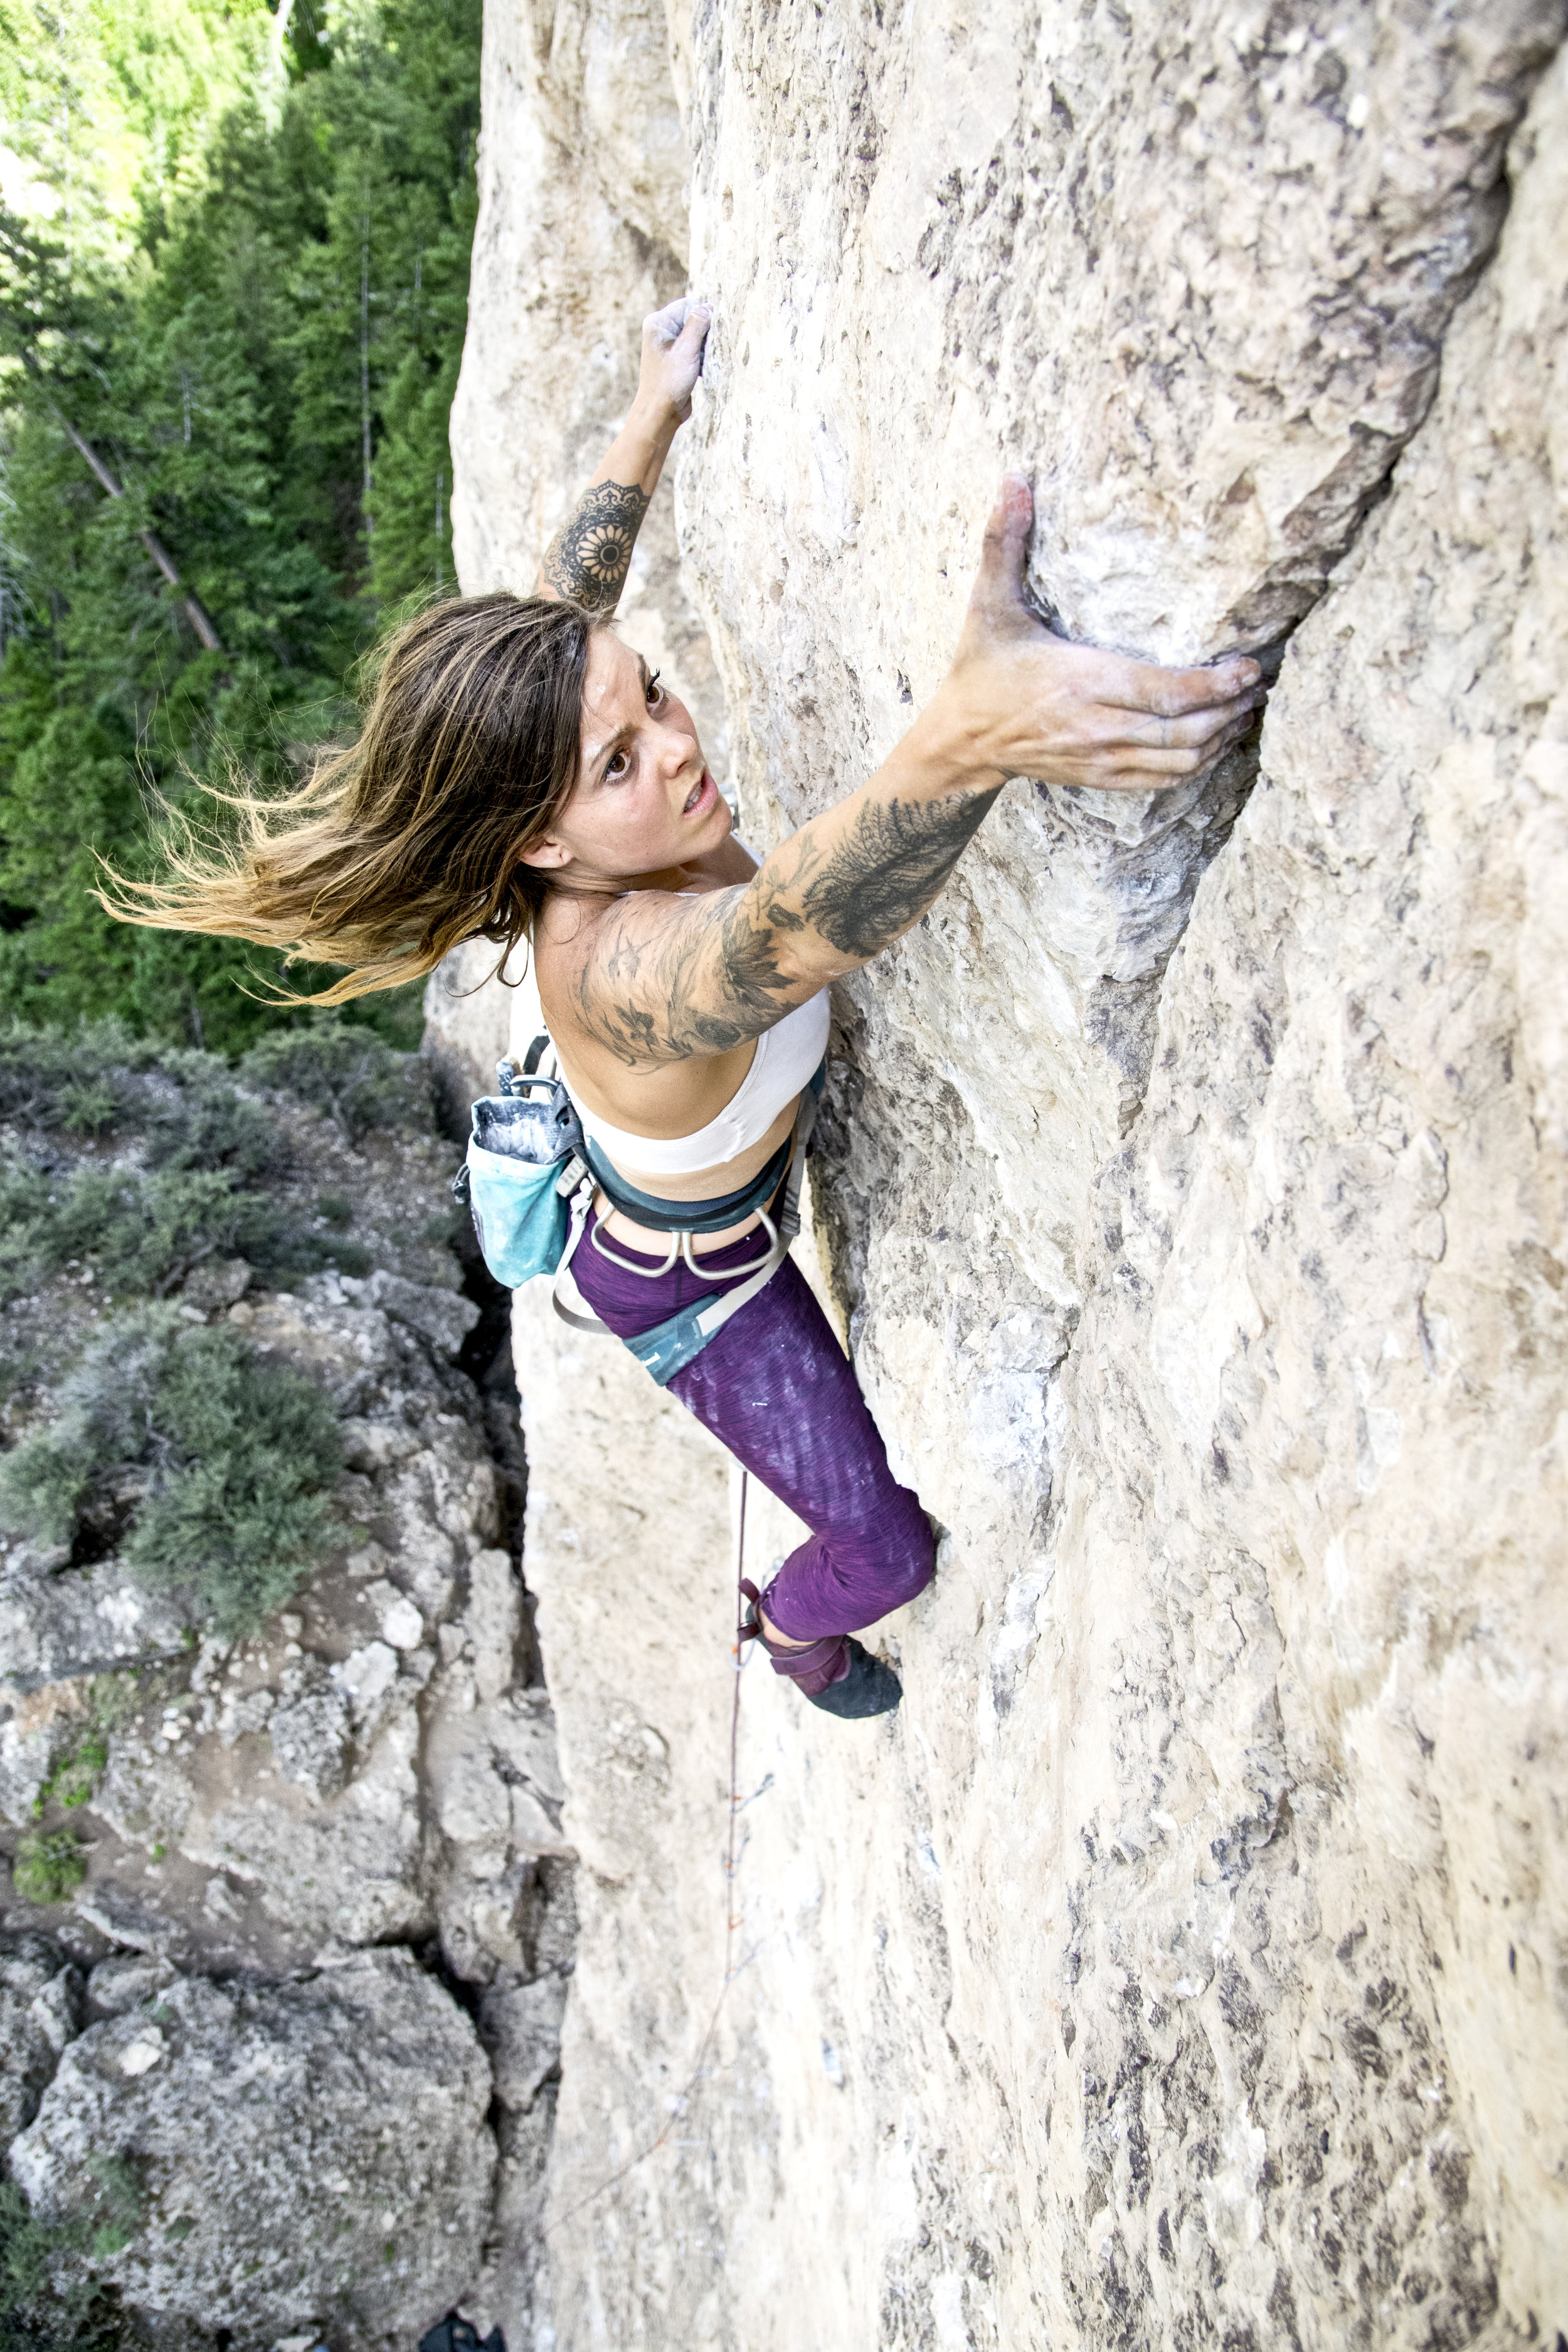 Photo courtesy of Jenny Walters (@Roarkfitness) of Rj on Psychoactive 13b/8a in Ten Sleep, WY